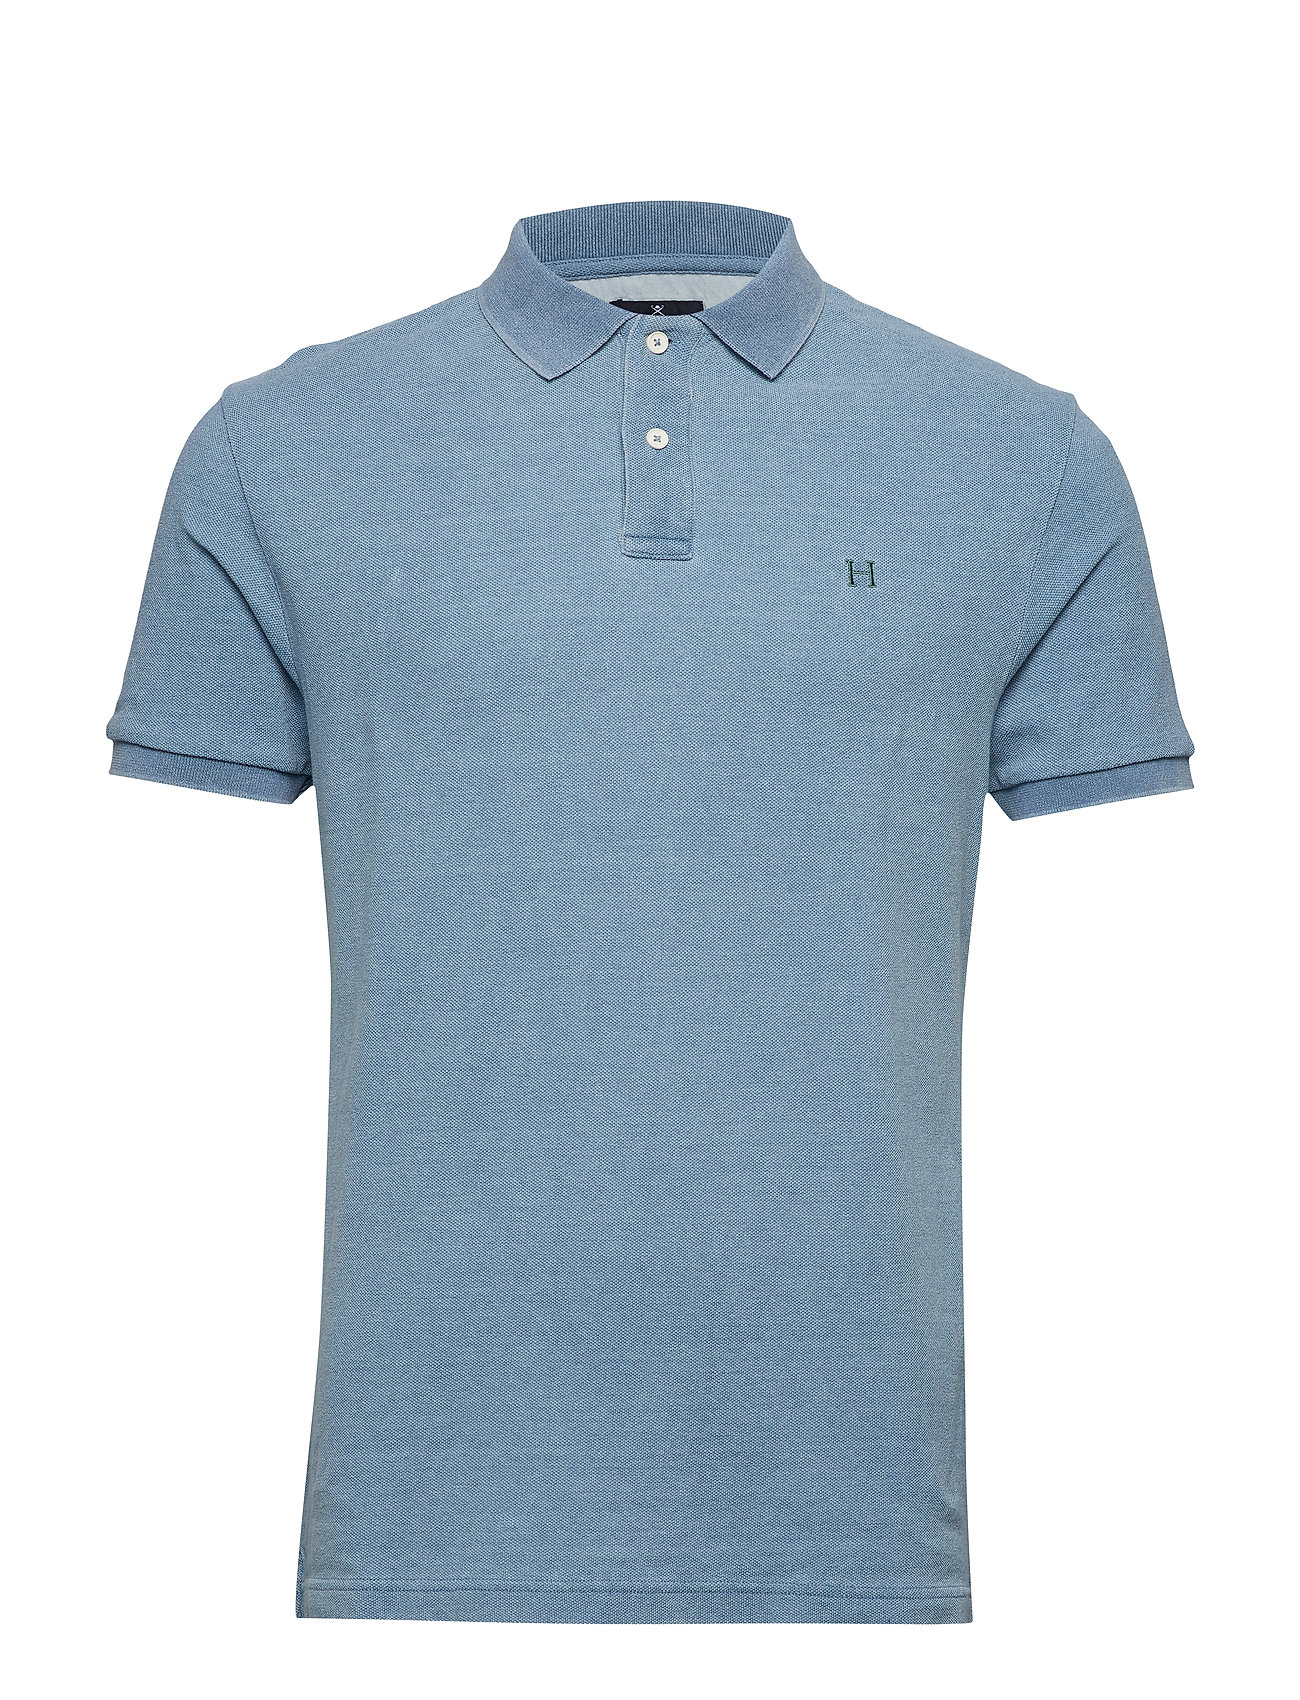 Hackett INDIGO POLO - 564CHAMBRAY